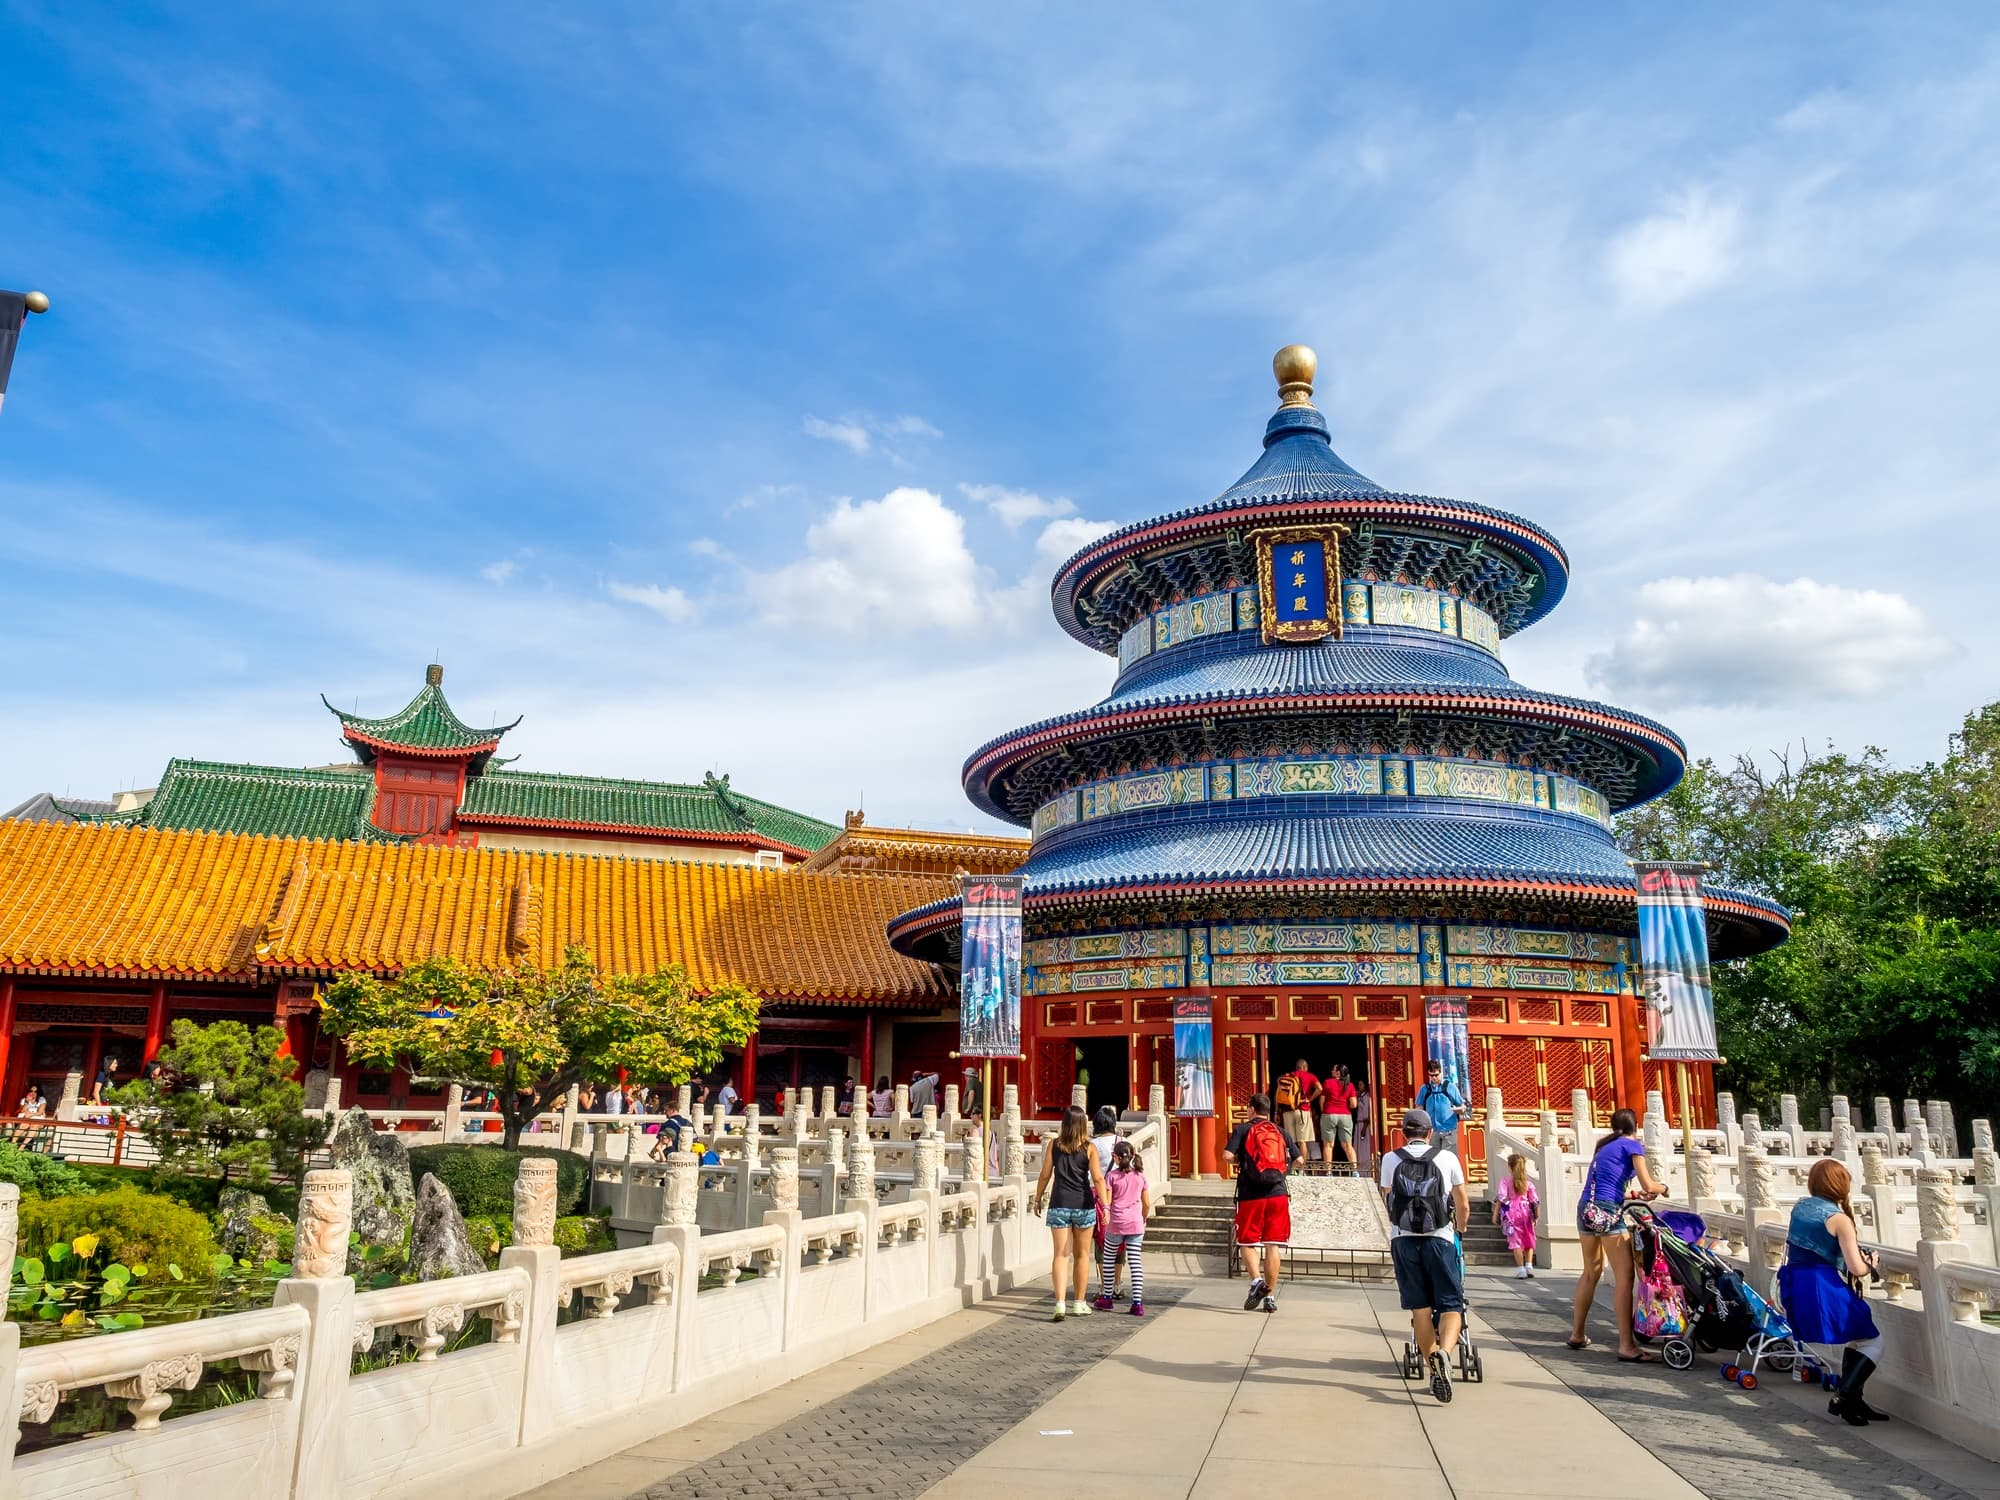 China is one of 11 countries you can visit at EPCOT with kids